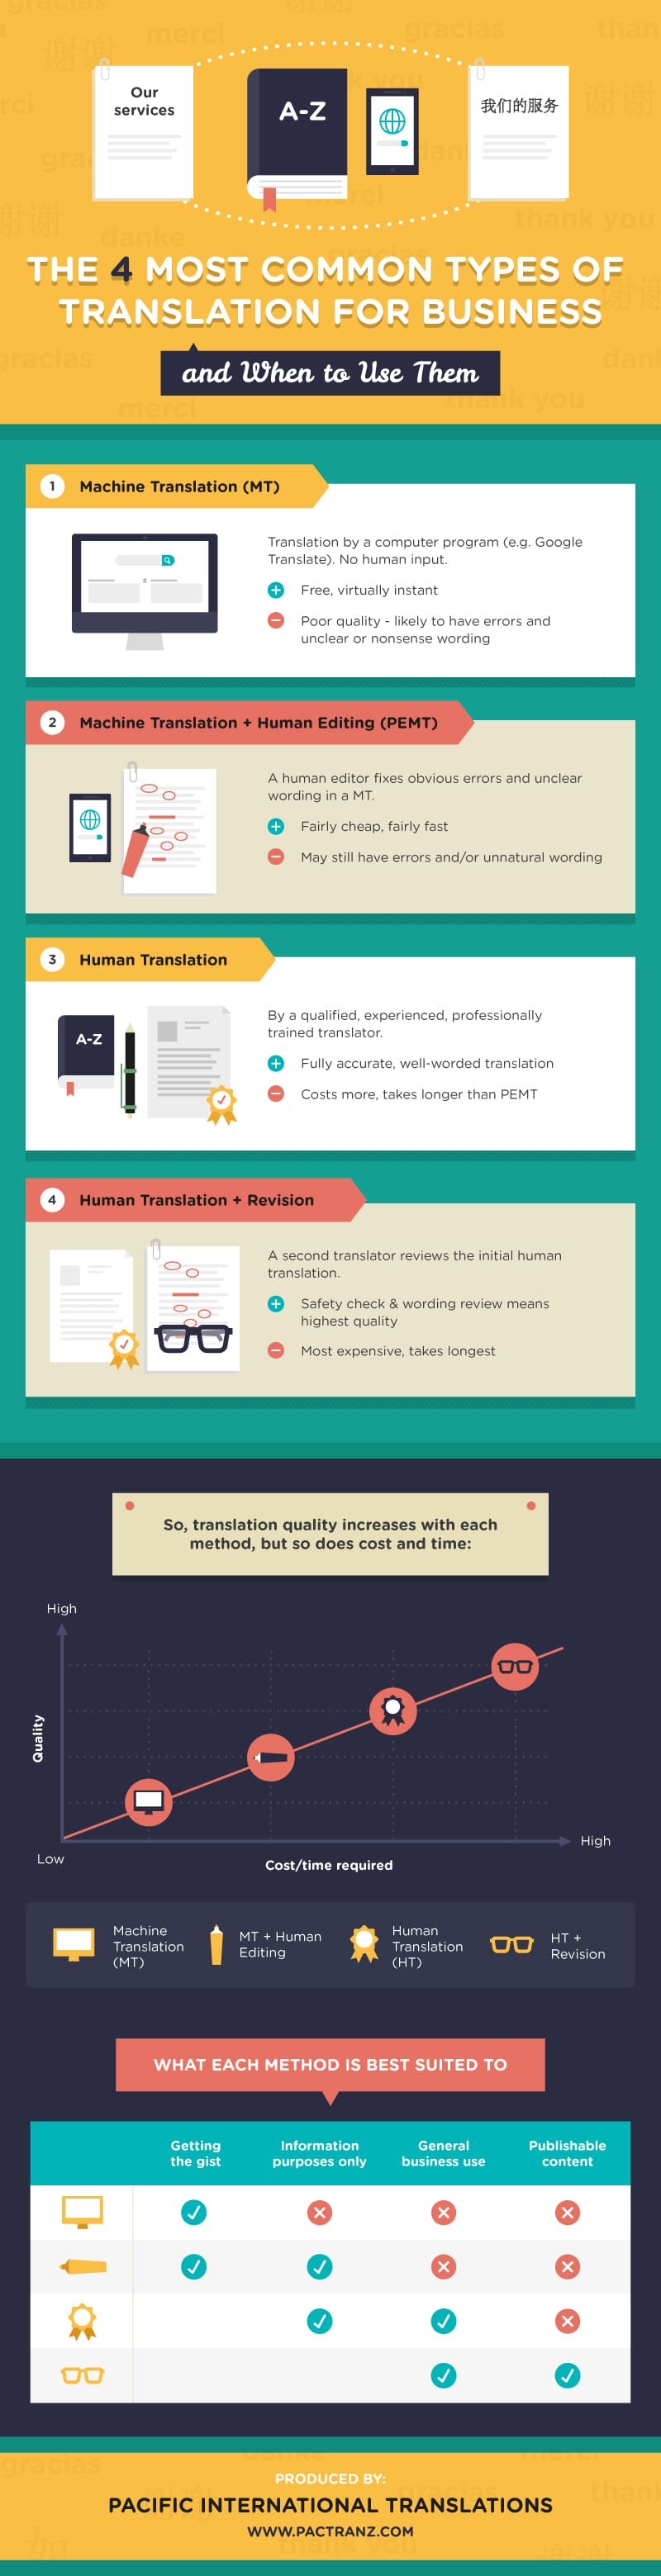 infographic detailing the 4 main translation methods used in business translations and when to use each one